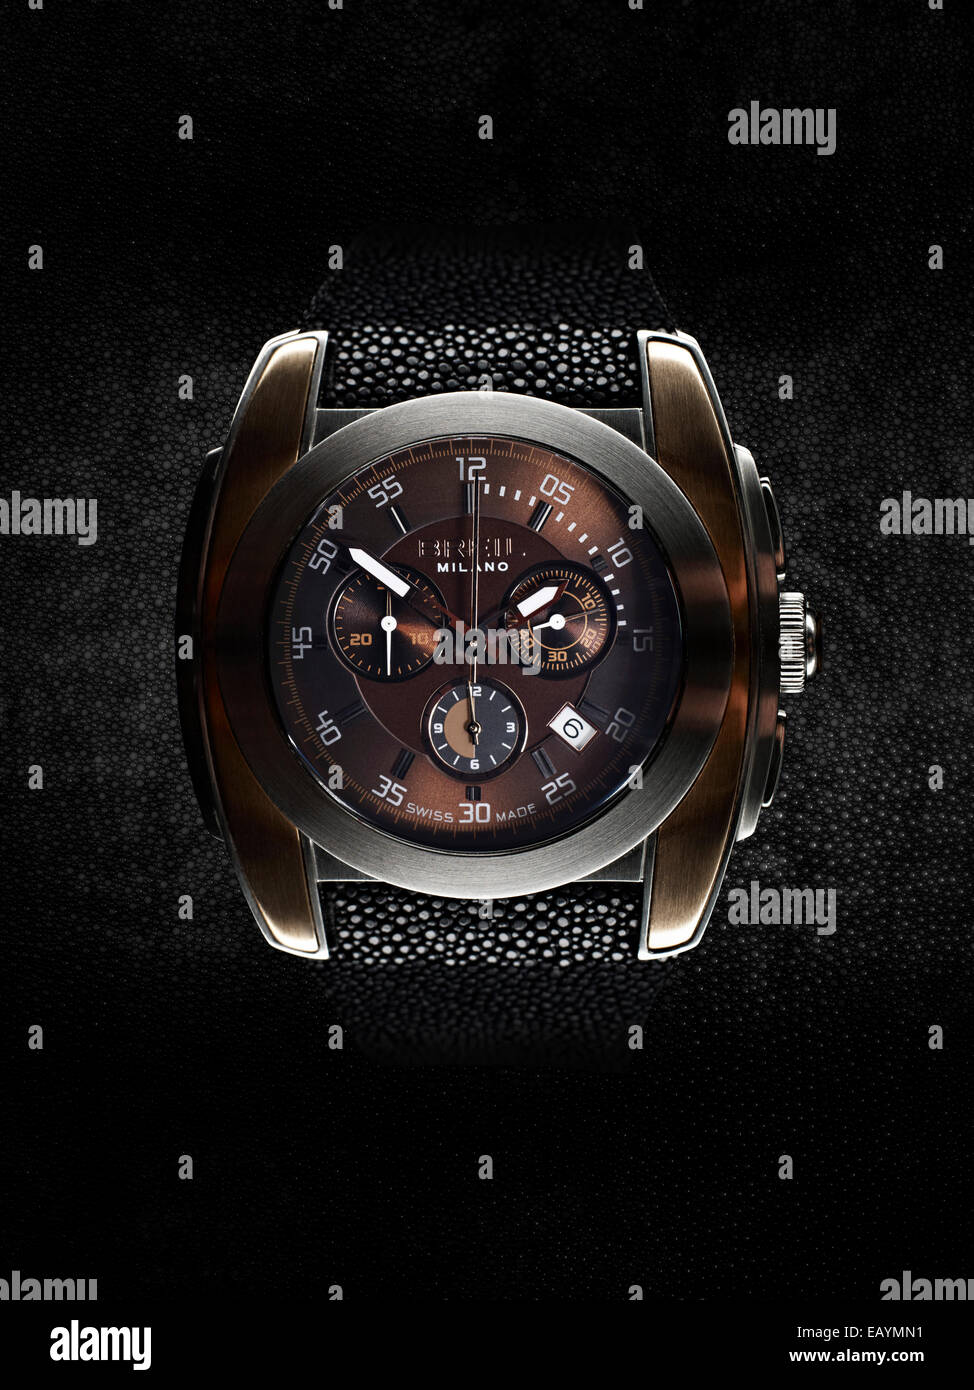 Studio still life image of a Briel chronograph watch with shagreen strap on black shagreen background. - Stock Image